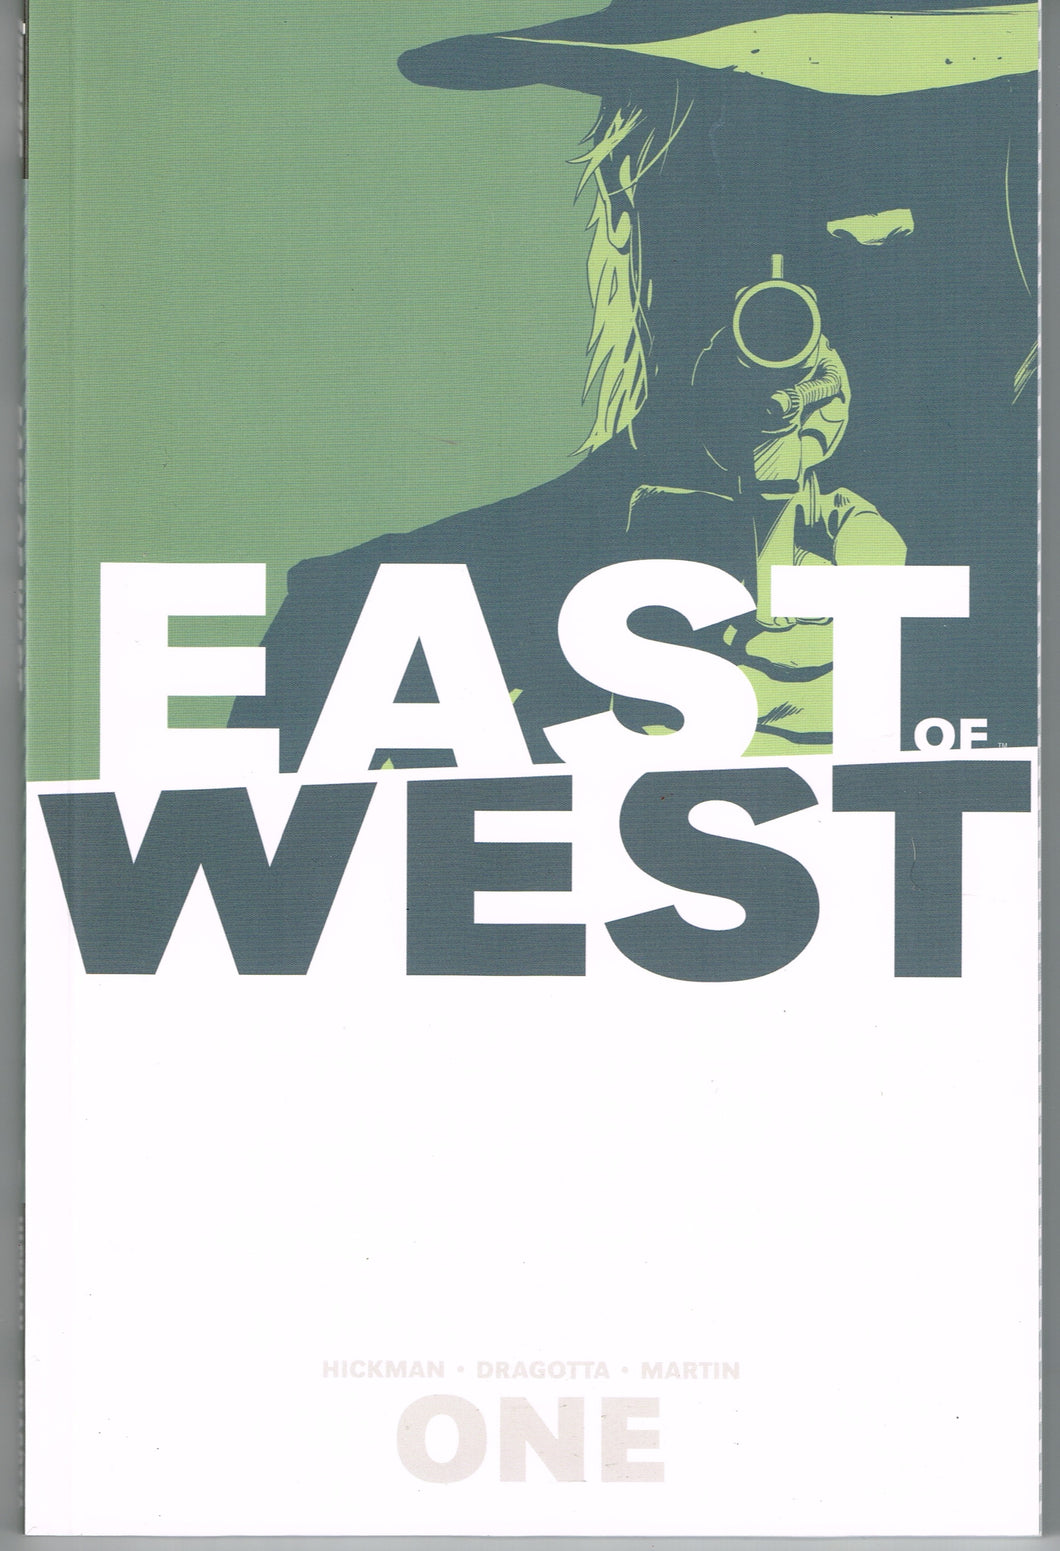 East of West, Volume One, TPB/Graphic Novel-New Image Comics, Hickman/Dragotta